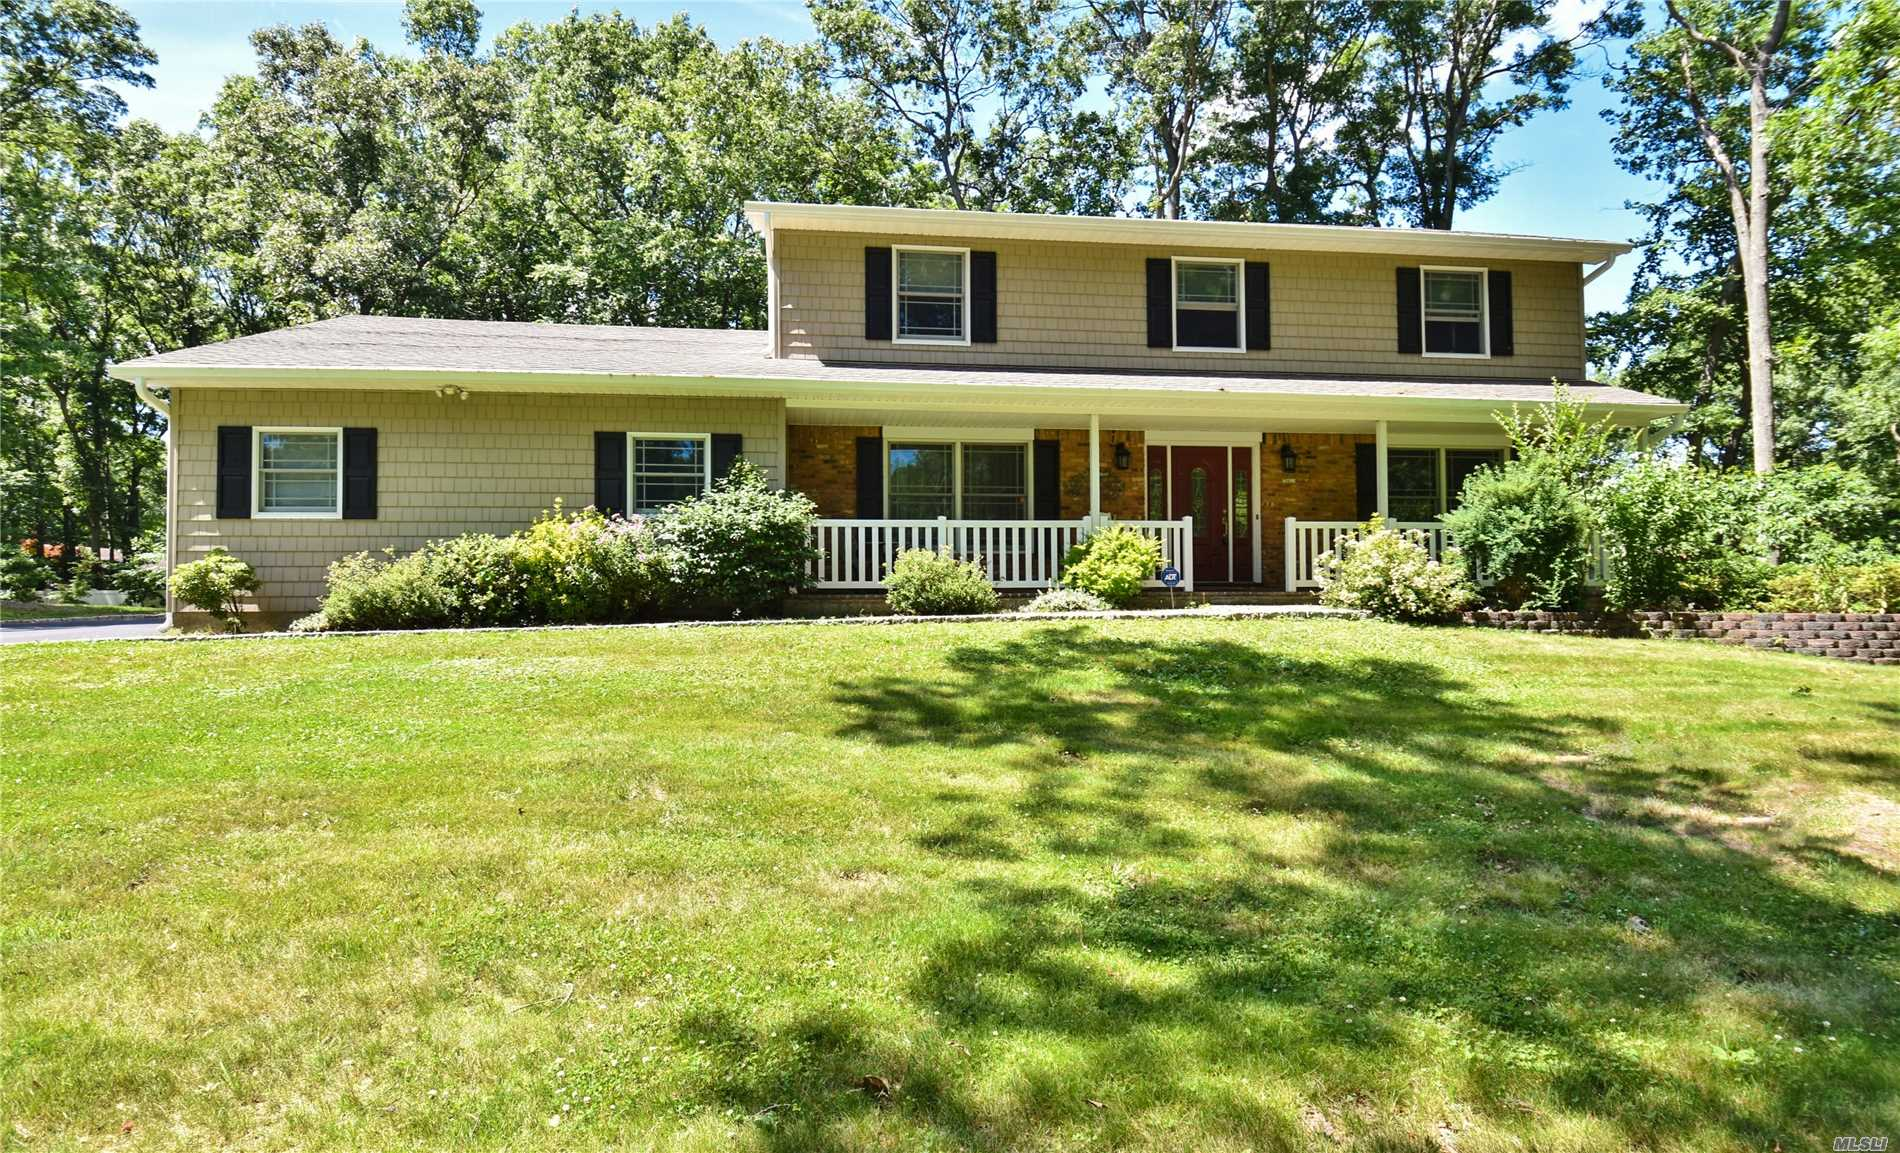 Photo of home for sale at 34 Hastings Dr, Northport NY